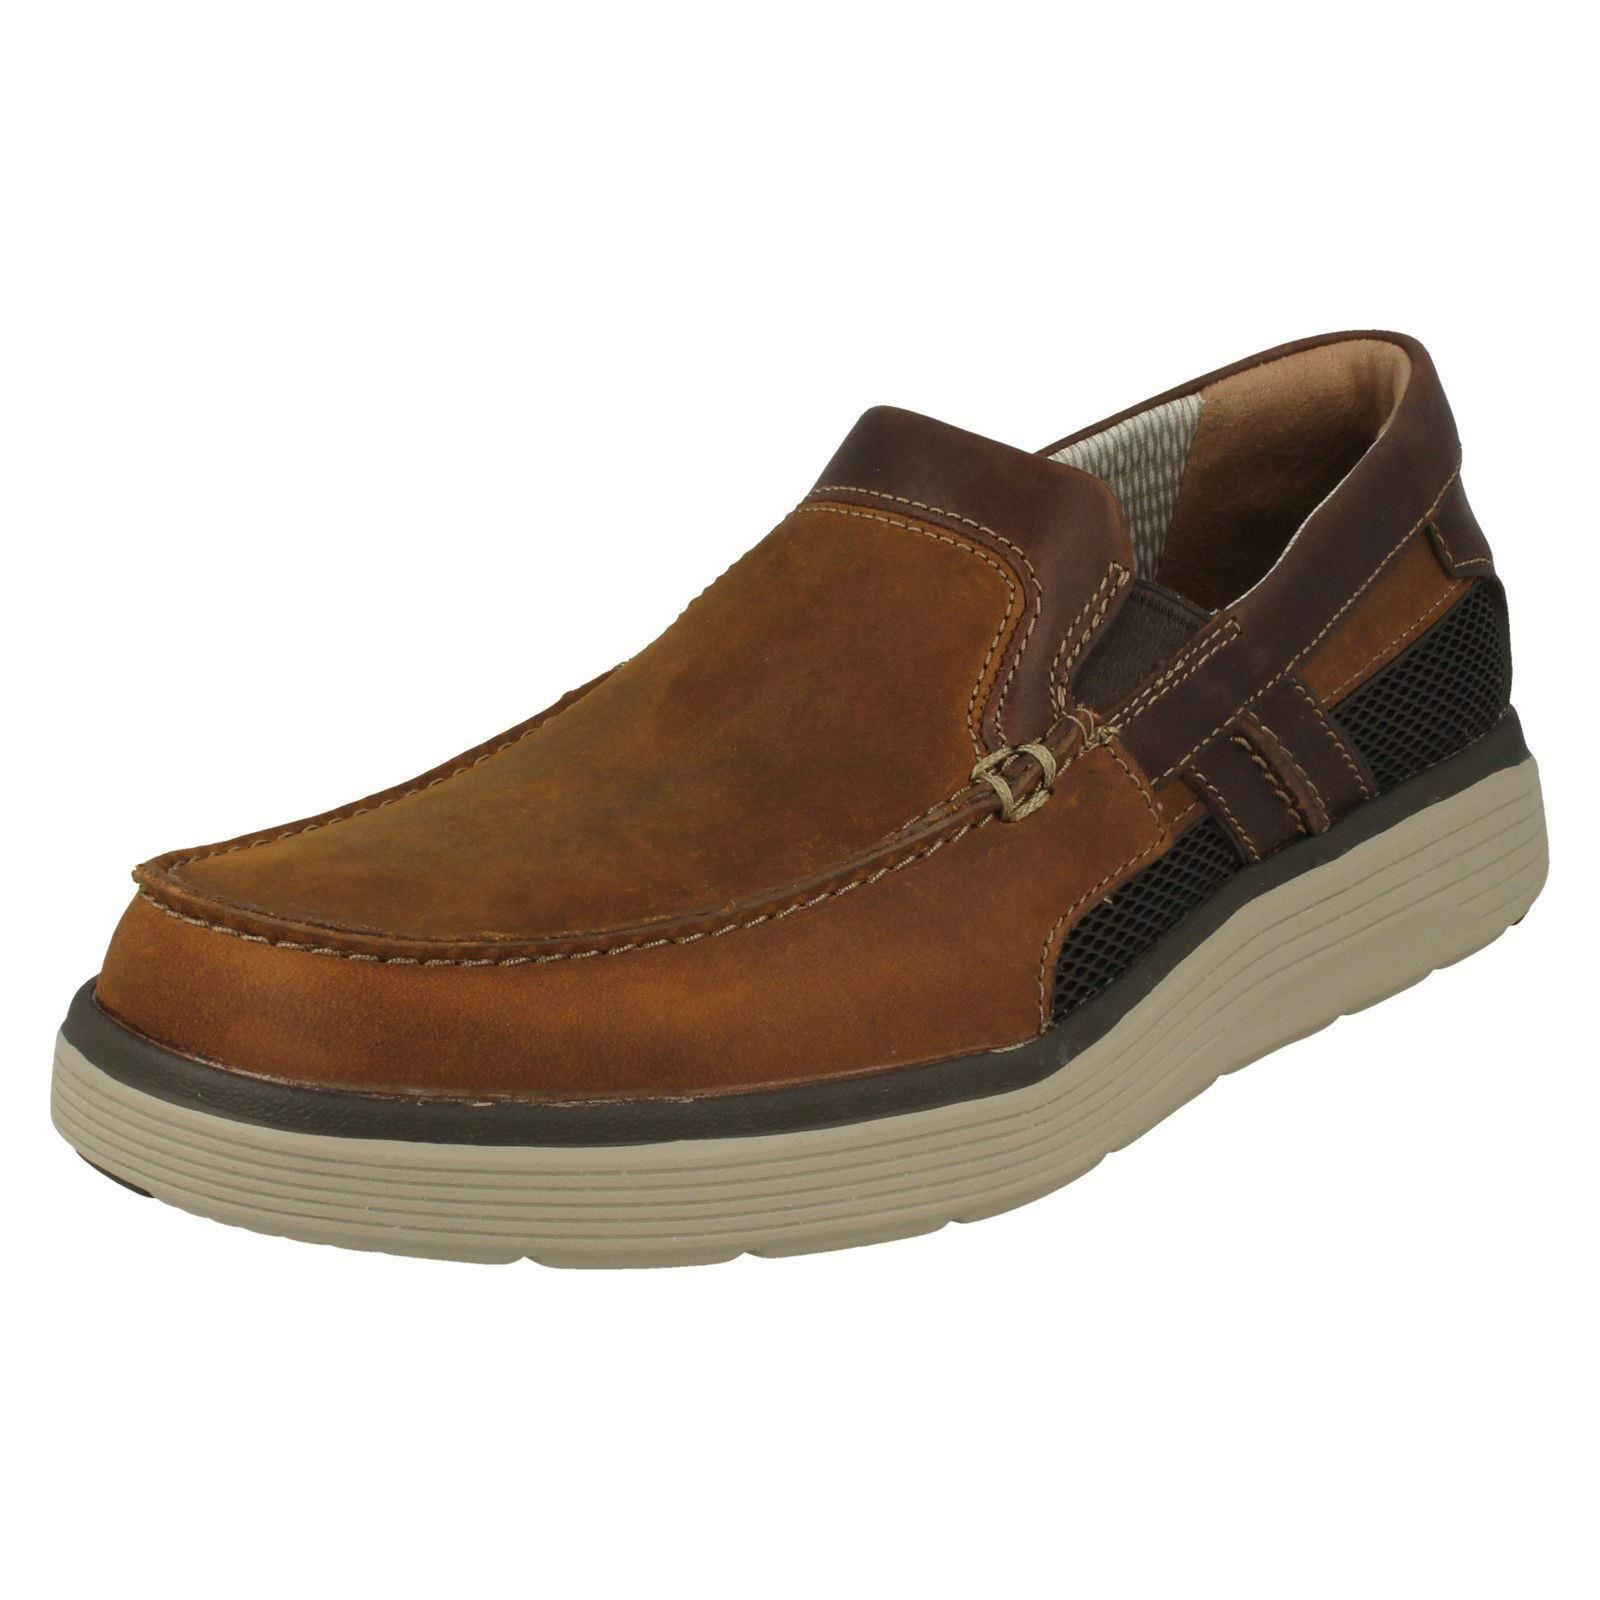 Mens-Clarks-Casual-Slip-On-Shoes-039-Un-